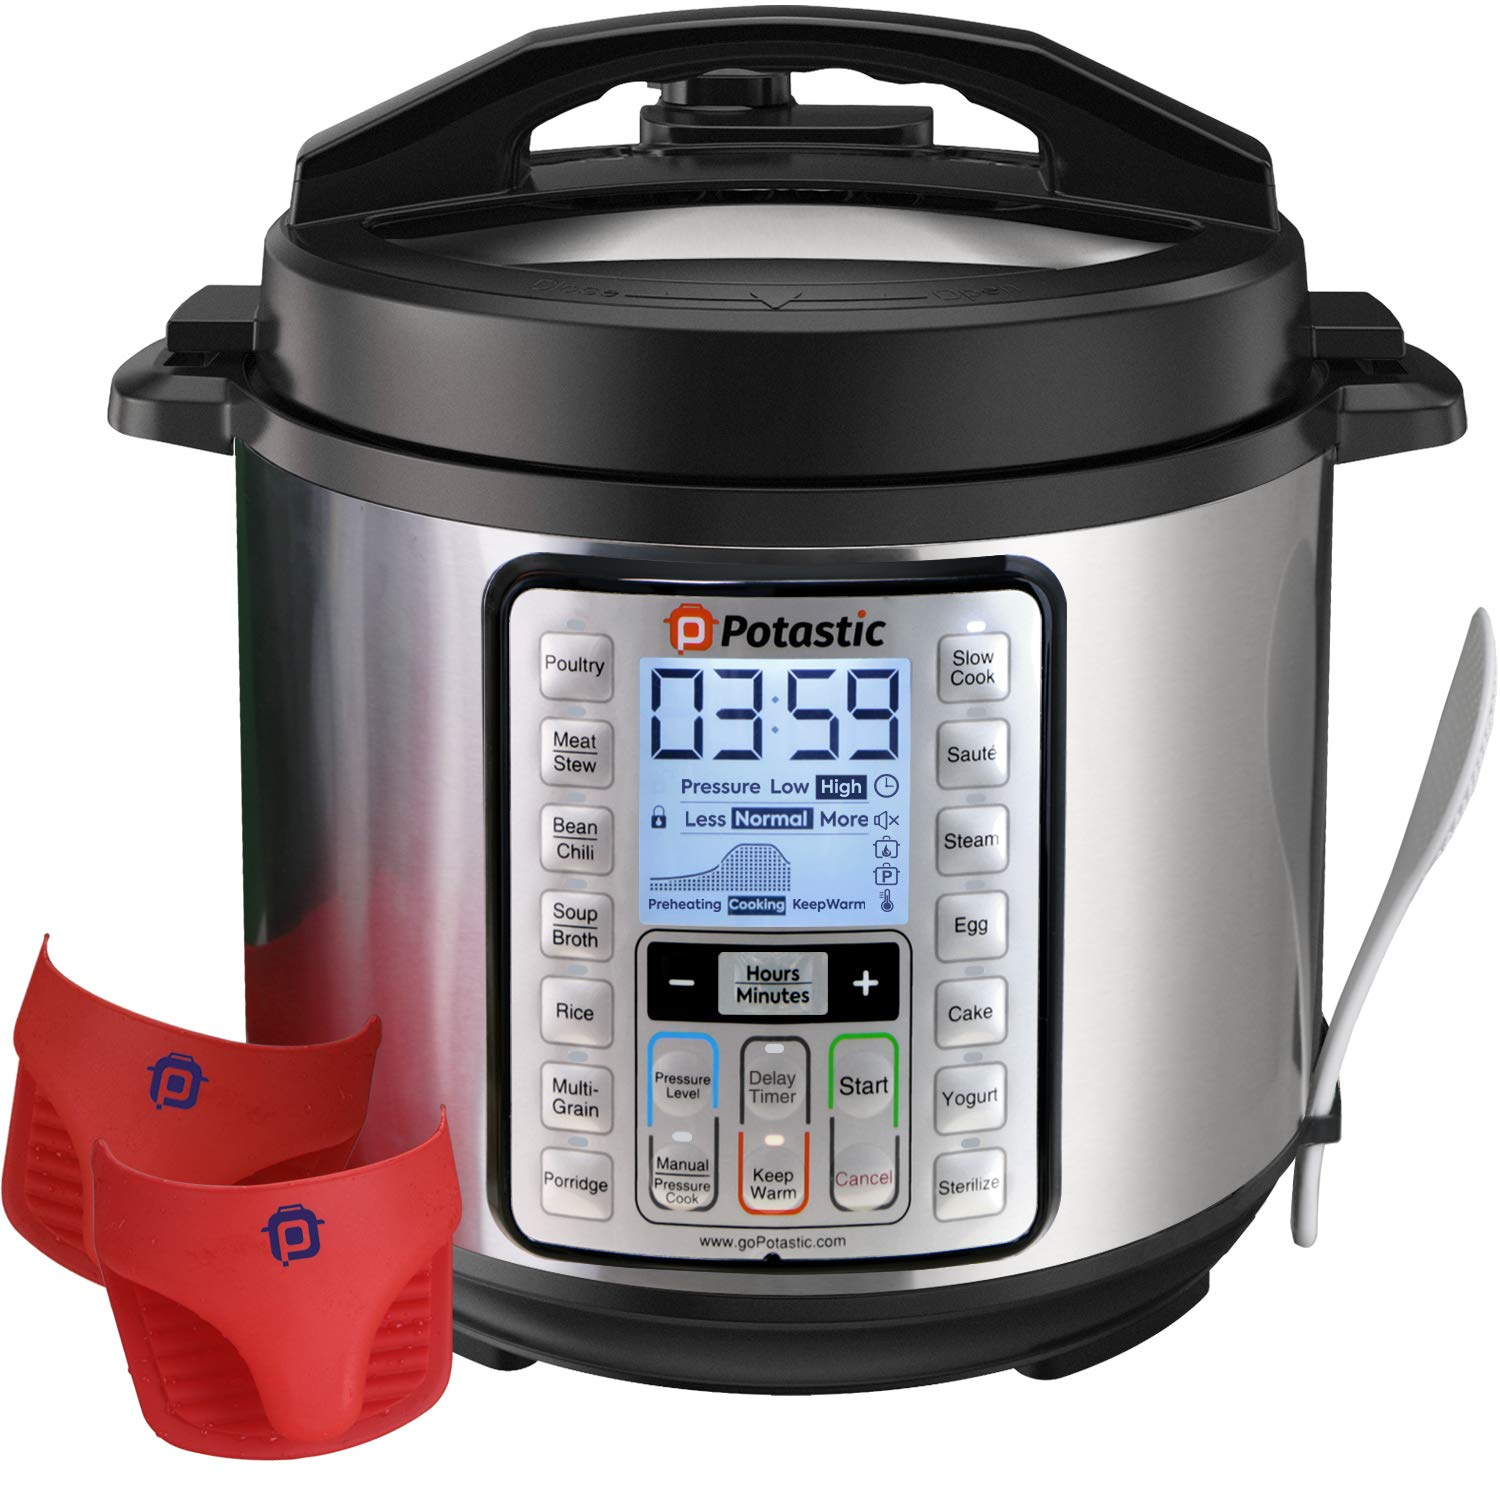 Potastic 6Qt 10-in-1 Programmable Pressure, LCD Display,Instant Cooking with Stainless Steel Pot, Multi, Slow, Rice, Yogurt Maker, Egg Cooker, Saute, Steamer, Warmer product image